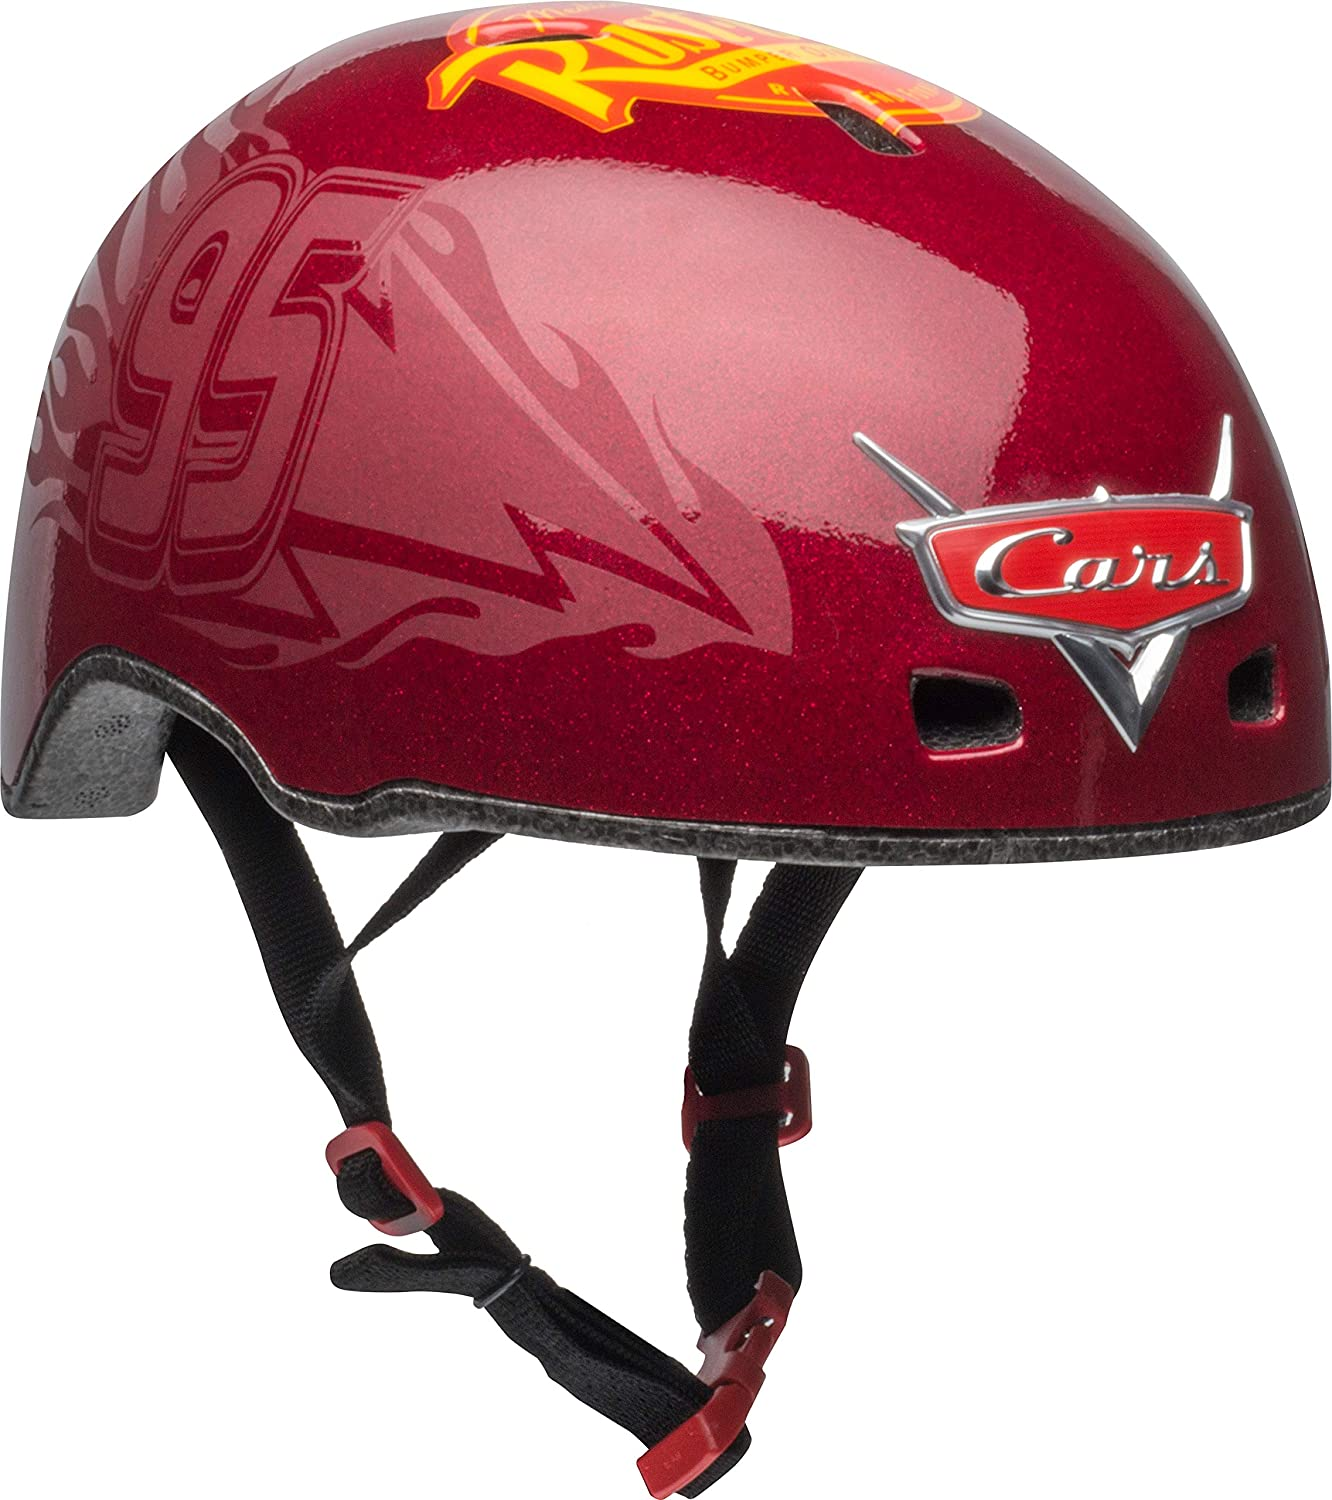 Bell Child and Toddler Cars Bike Helmets